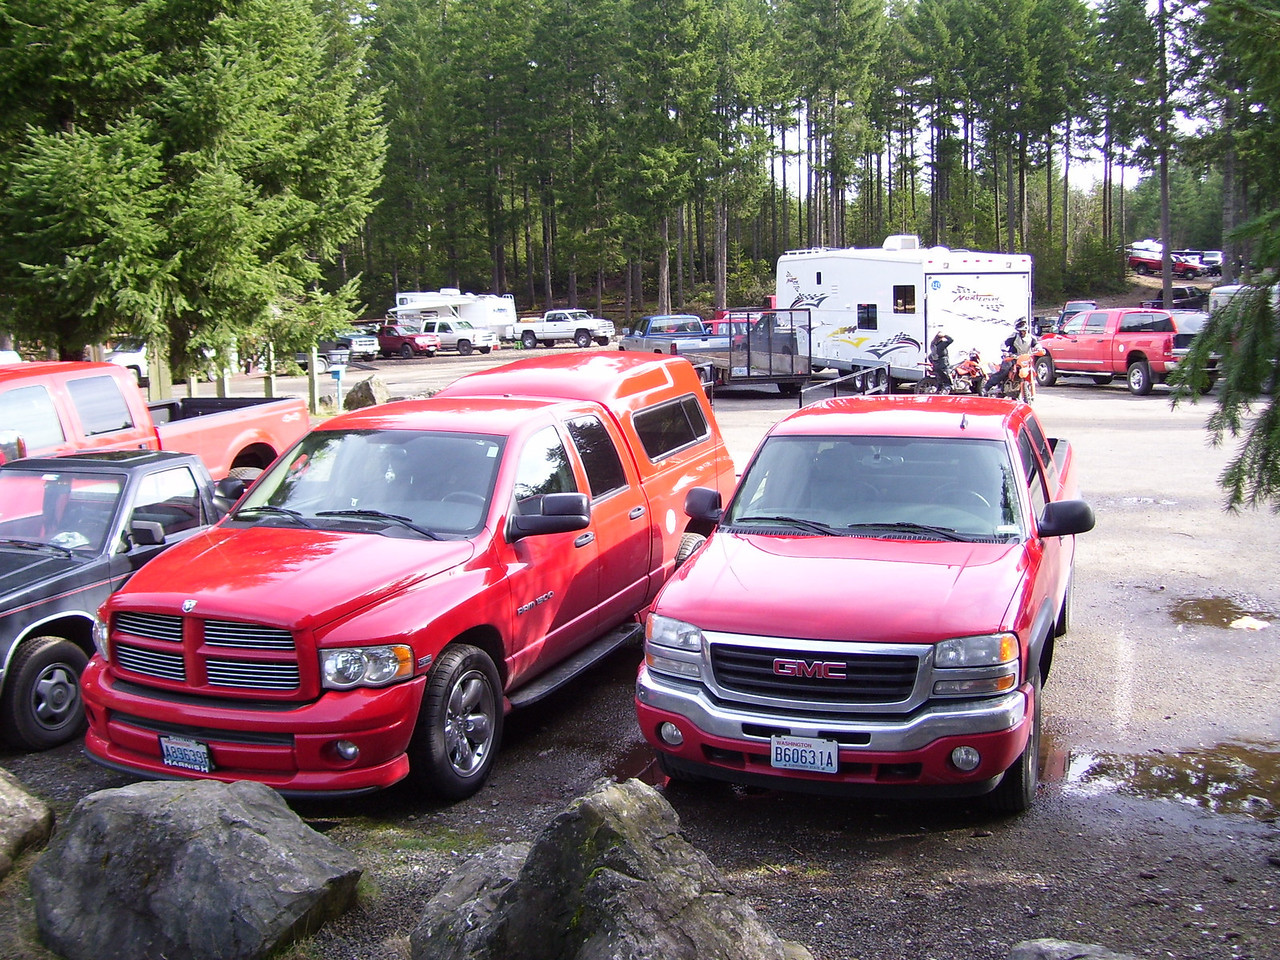 Sunday parking problems at the Tahuya Stagging Area. But where we go none others dare follow!